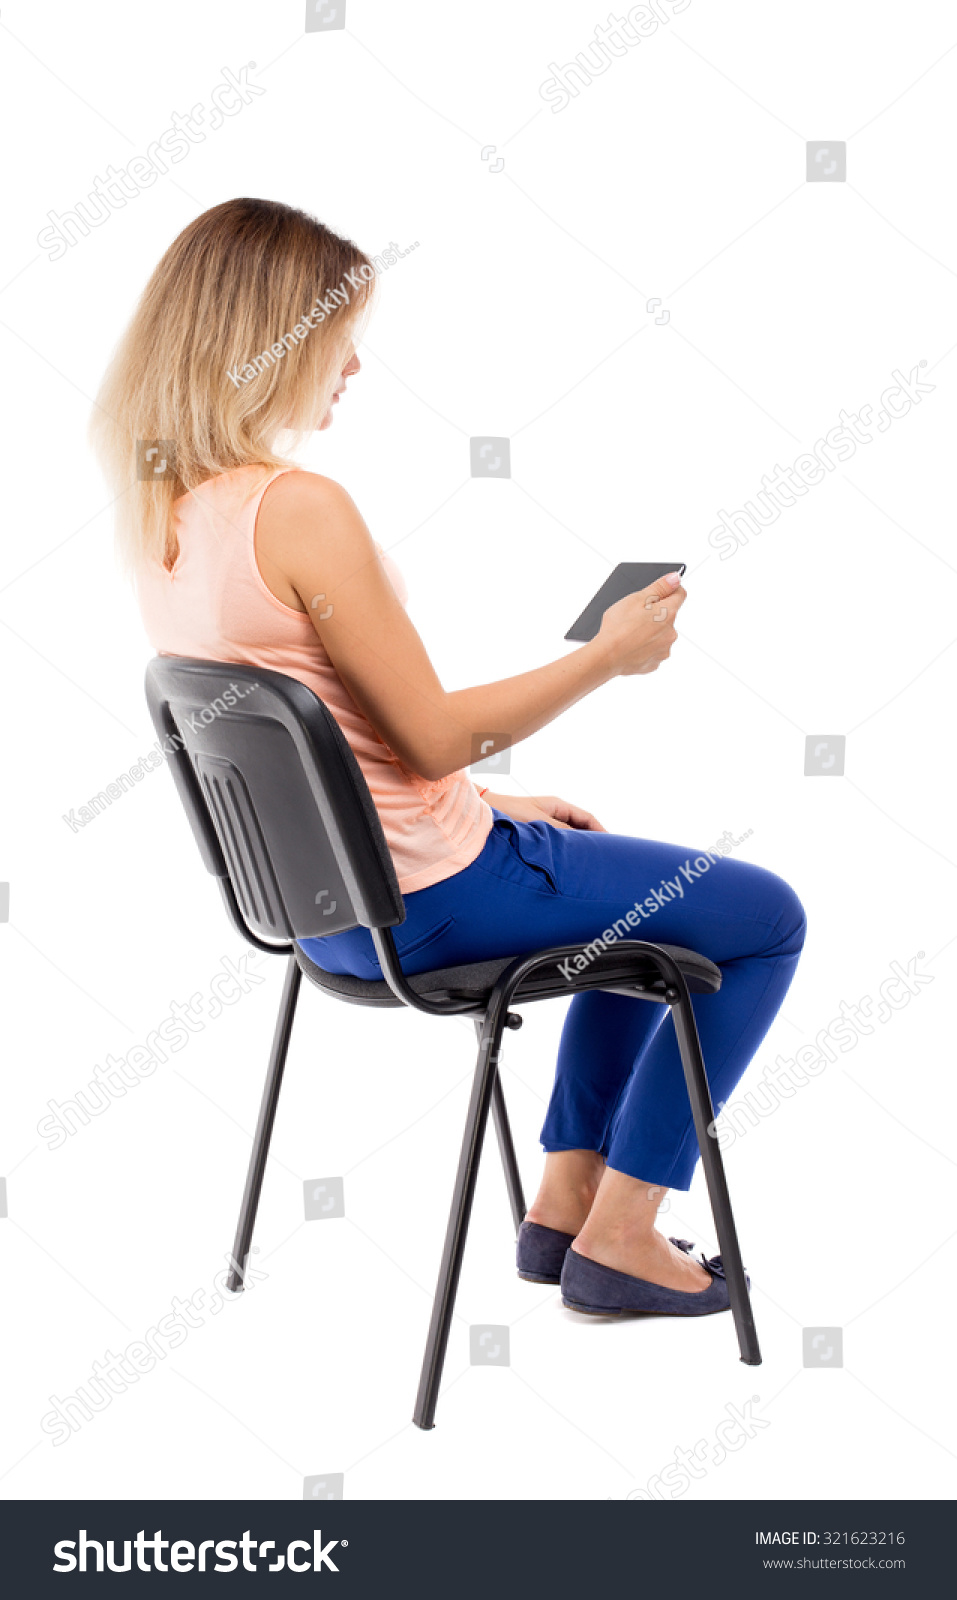 Back View Woman Sitting On Chair Stock Photo 321623216 ...